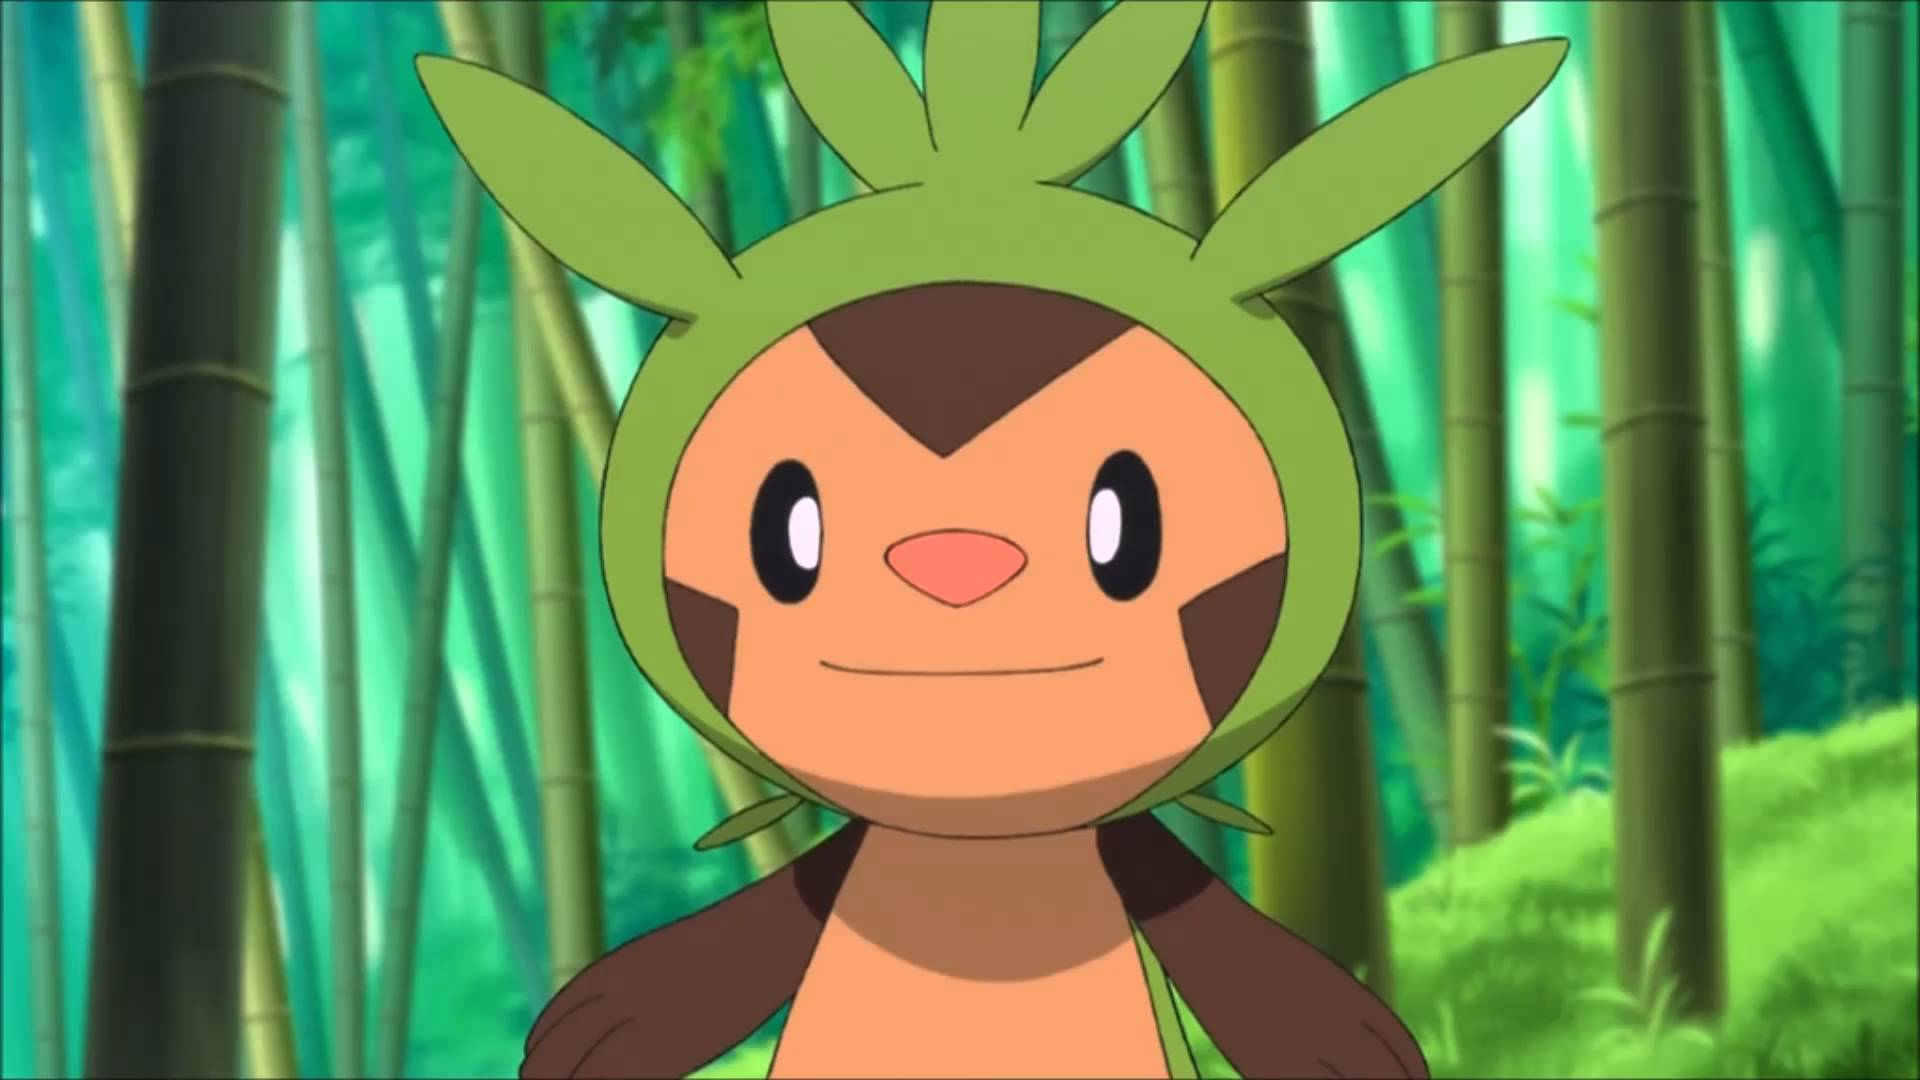 Pokémon image Chespin HD wallpapers and backgrounds photos